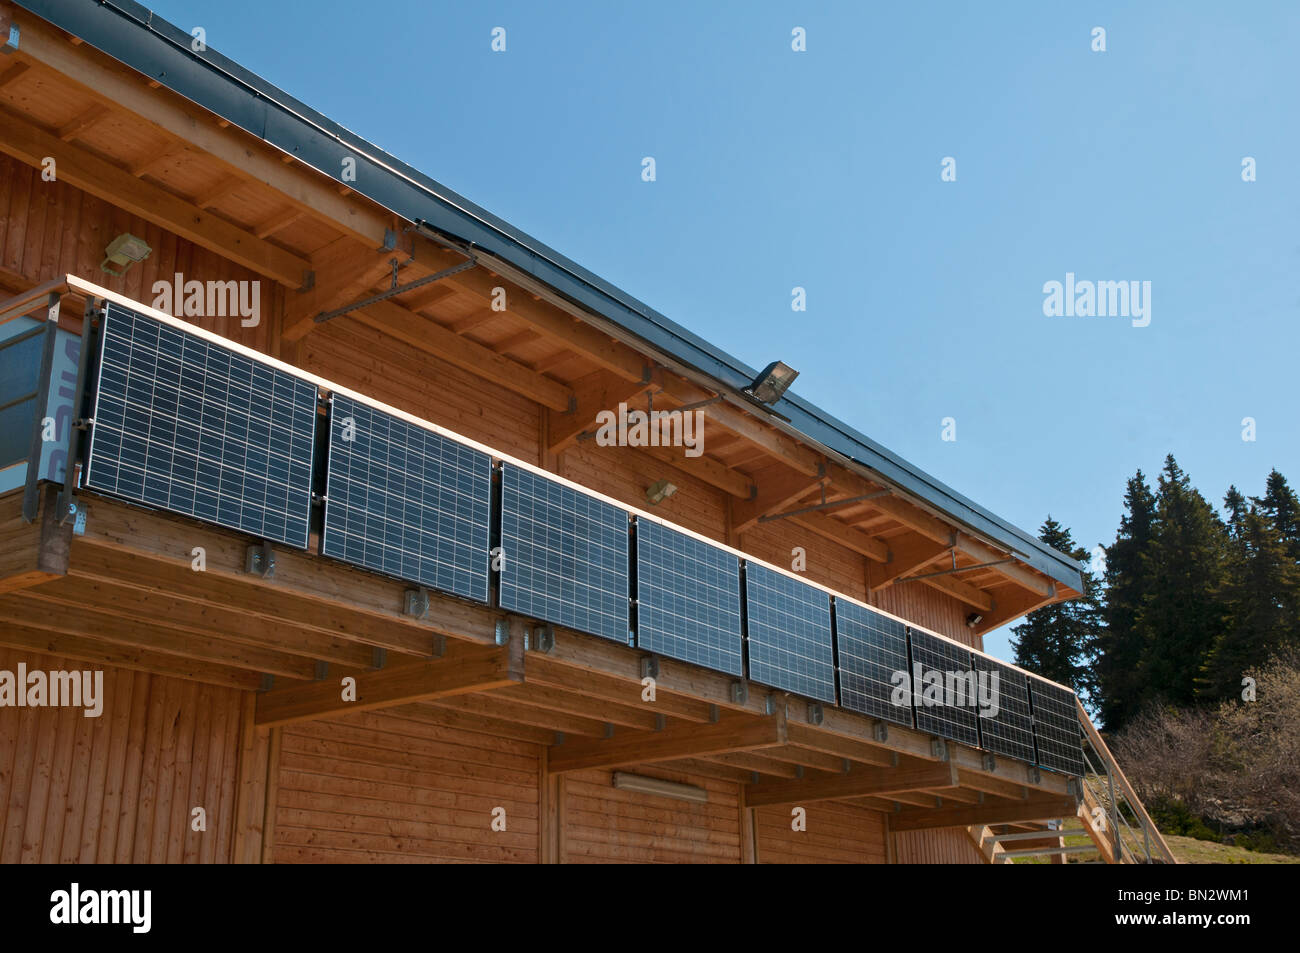 Solar panels on a house balcony - Stock Image